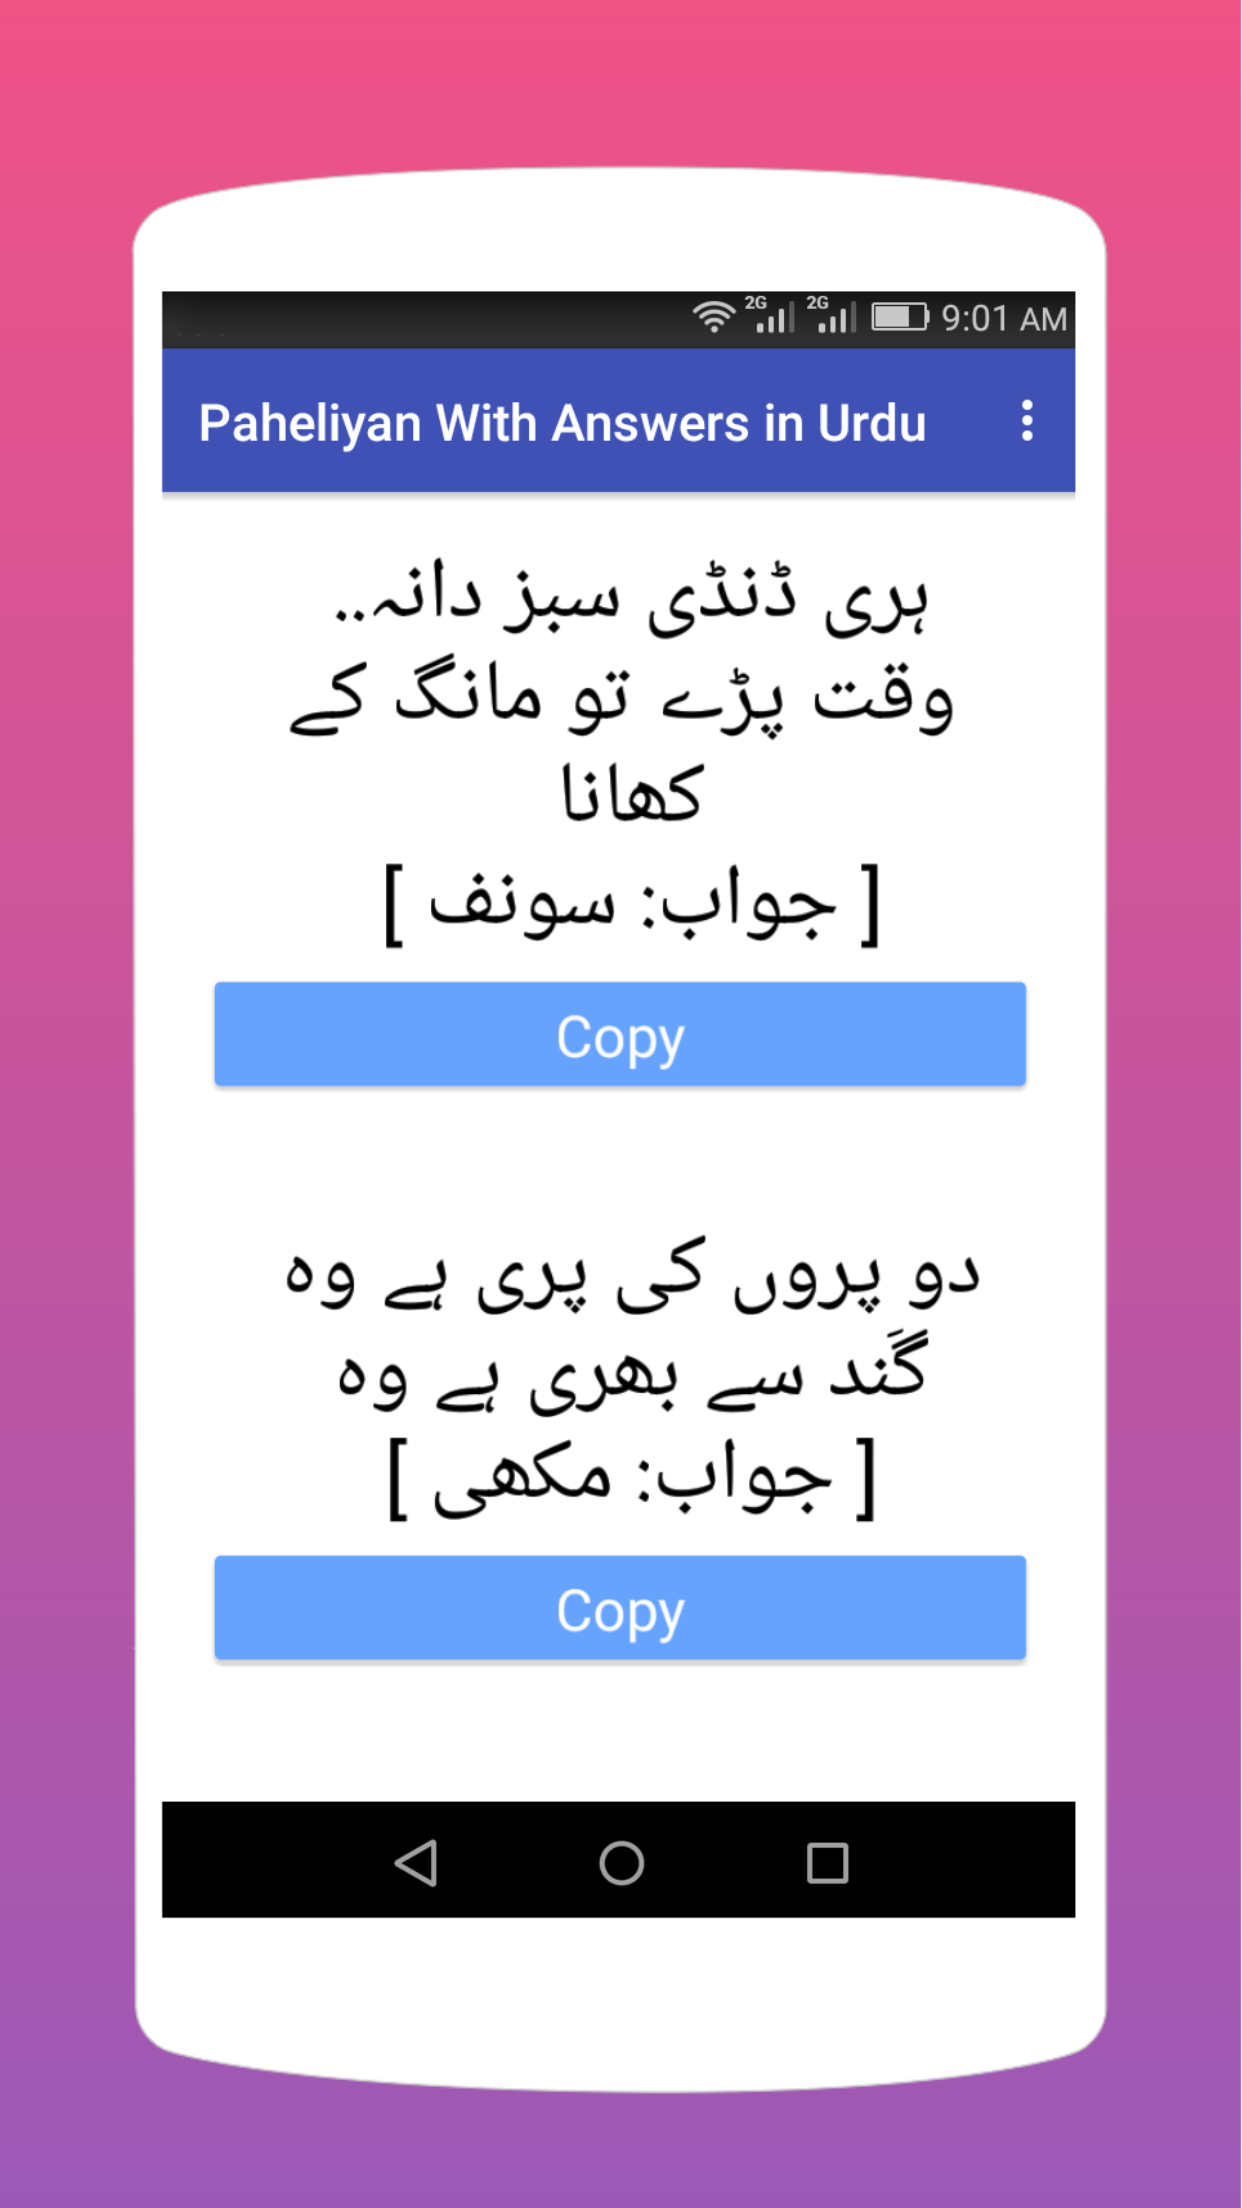 Pakistan's Best Urdu Paheliyan with Answers. This app has